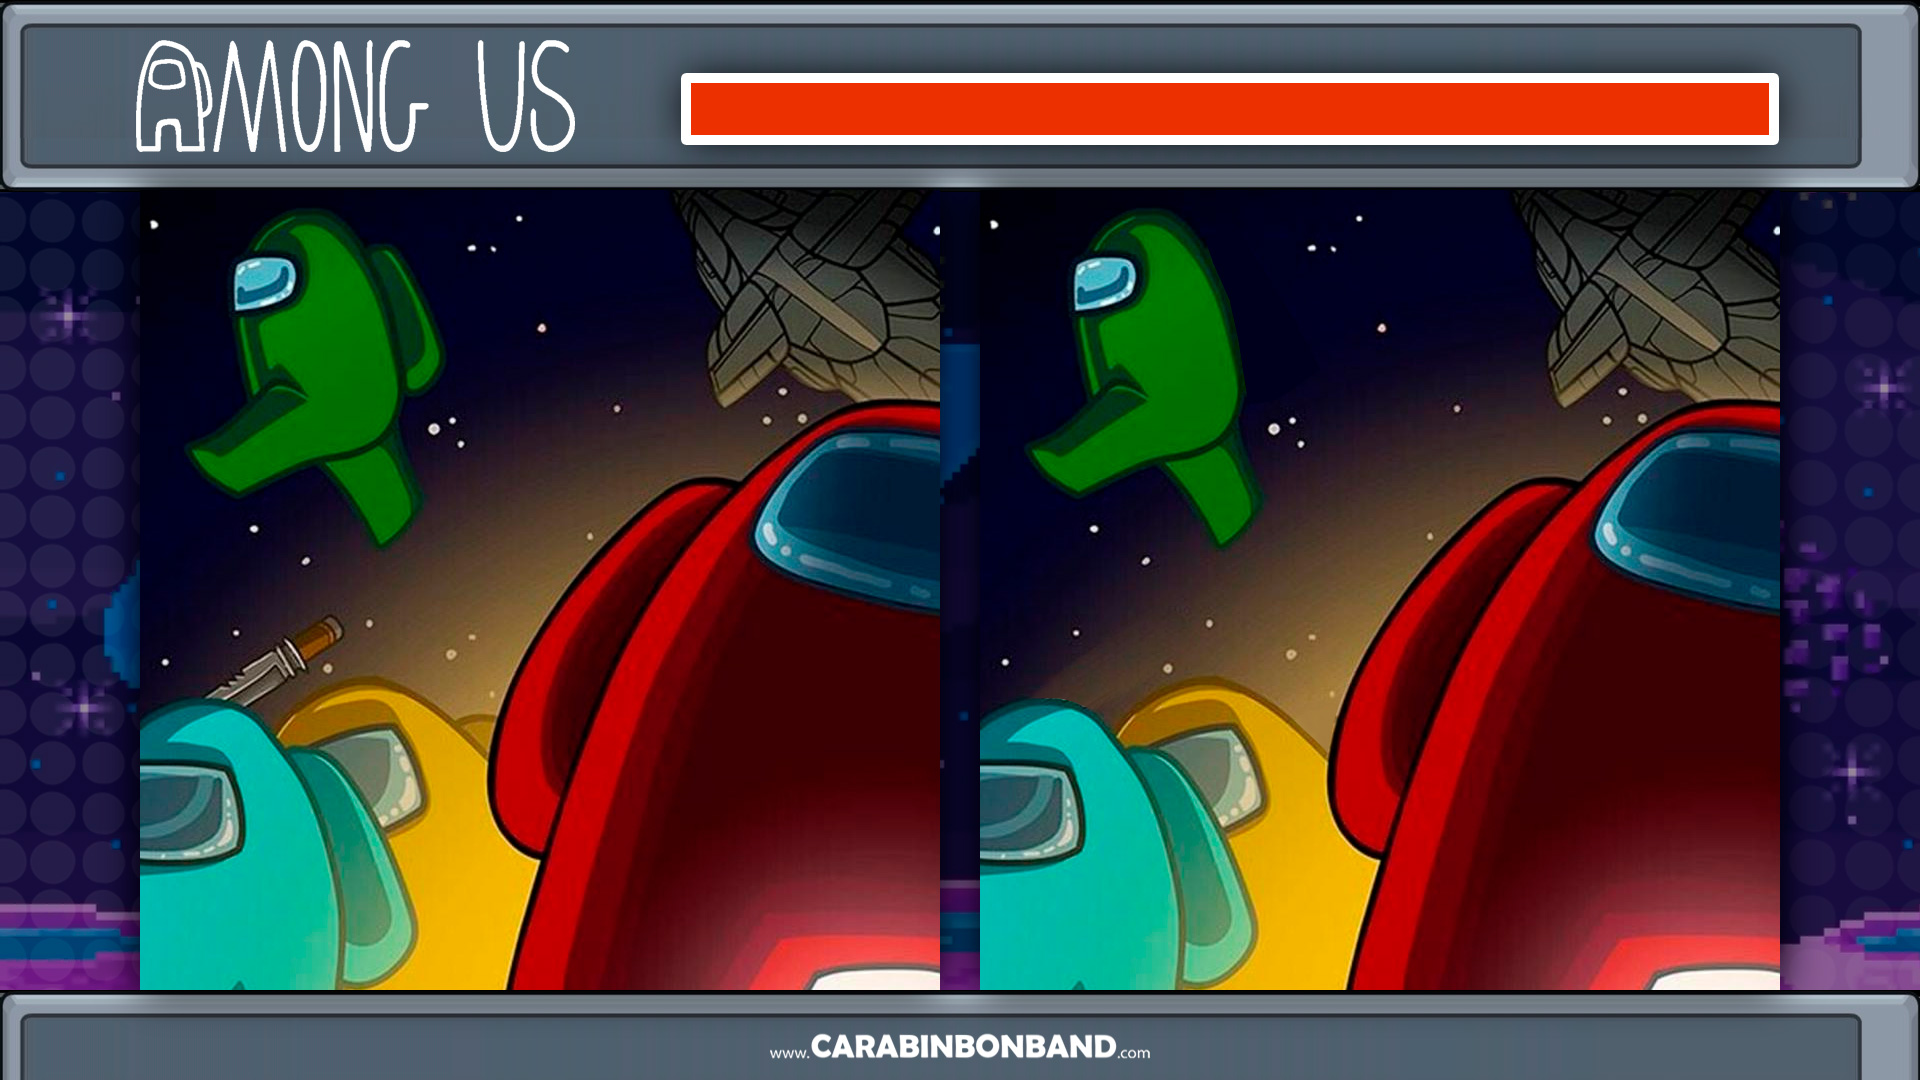 AMONG US - FIND THE 3 DIFFERENCES - HARD LEVEL